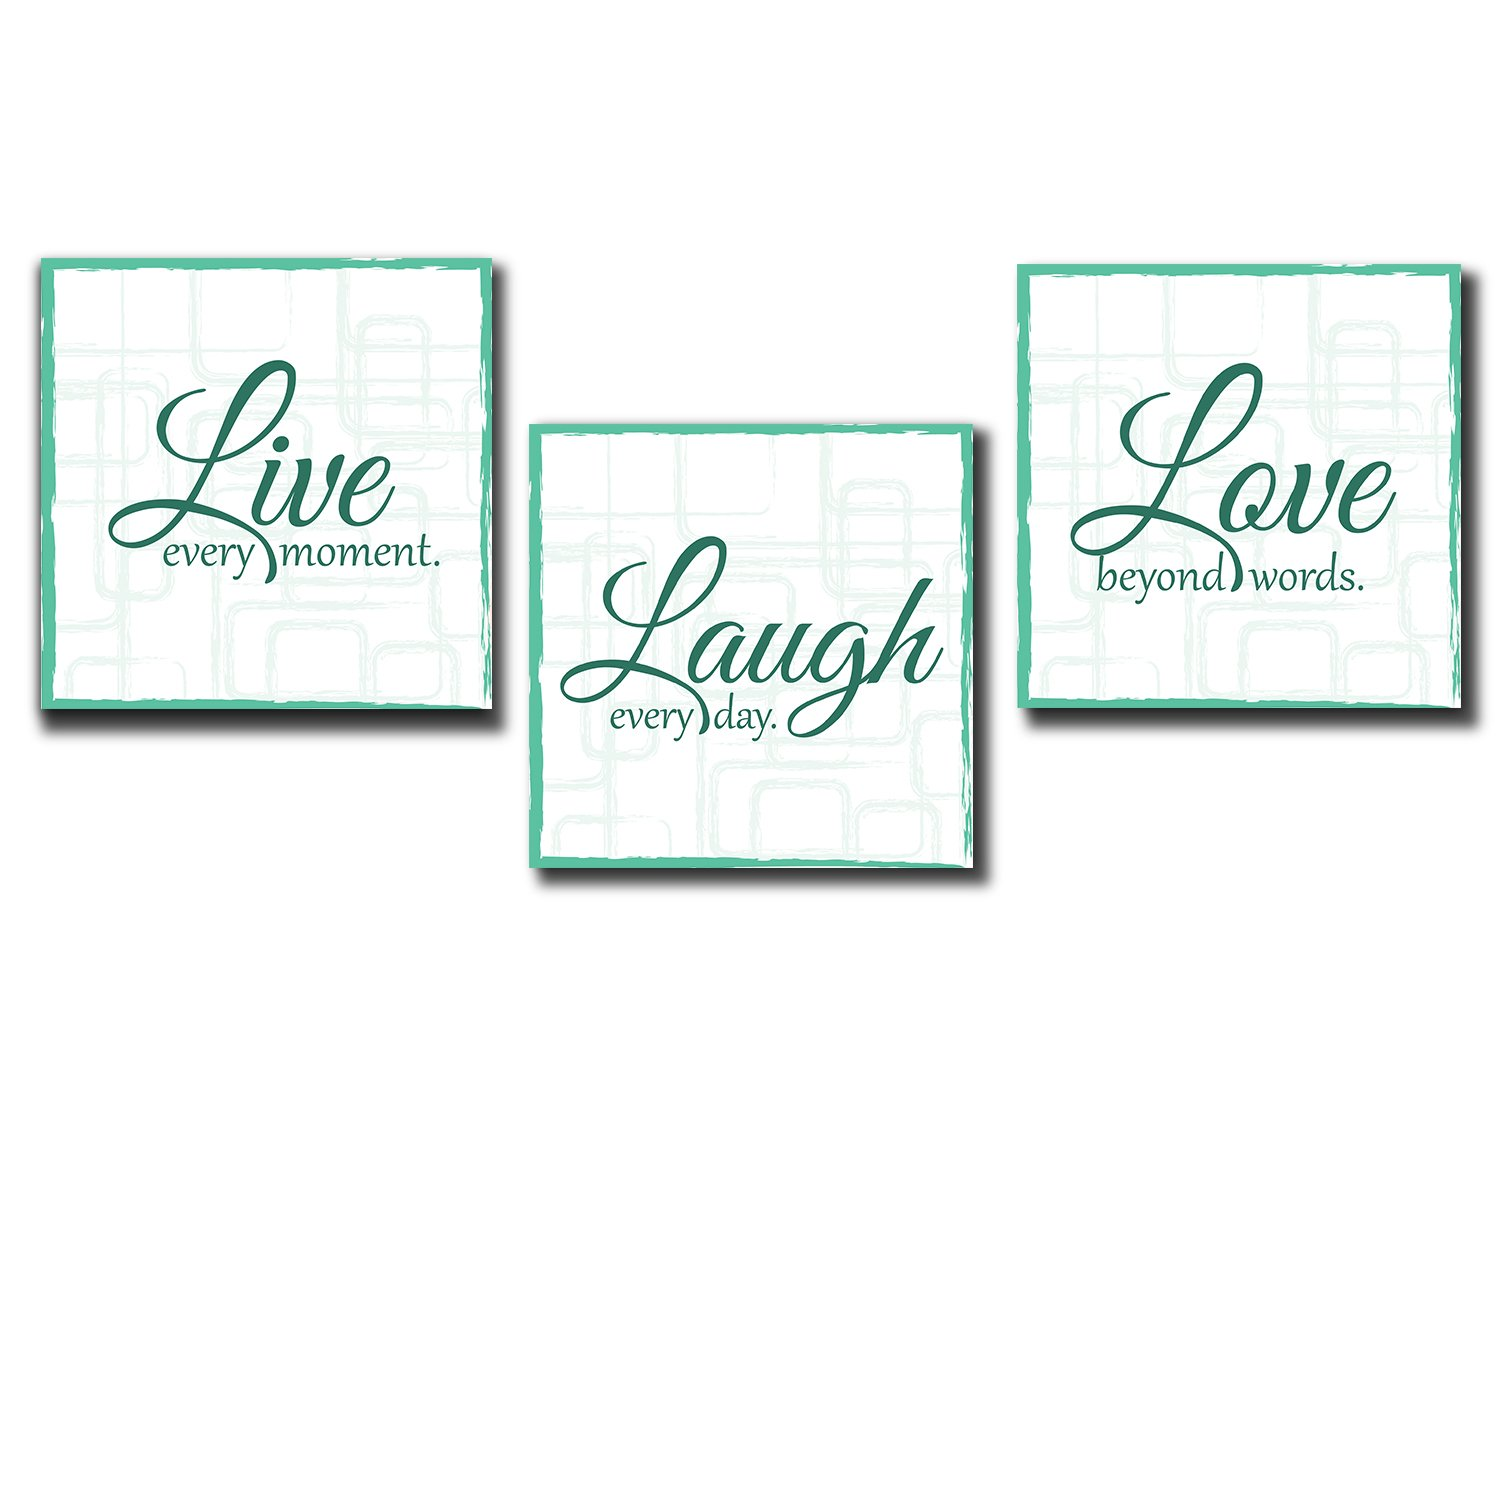 Live Laugh Love - 3 Piece Canvas Print - Wall Art Decor - Gallery Wrap Panels on Wooden Stretcher Bars - Colorful Design for Home - Beautiful Quote - Ready to Hang - Wall26 -Teal